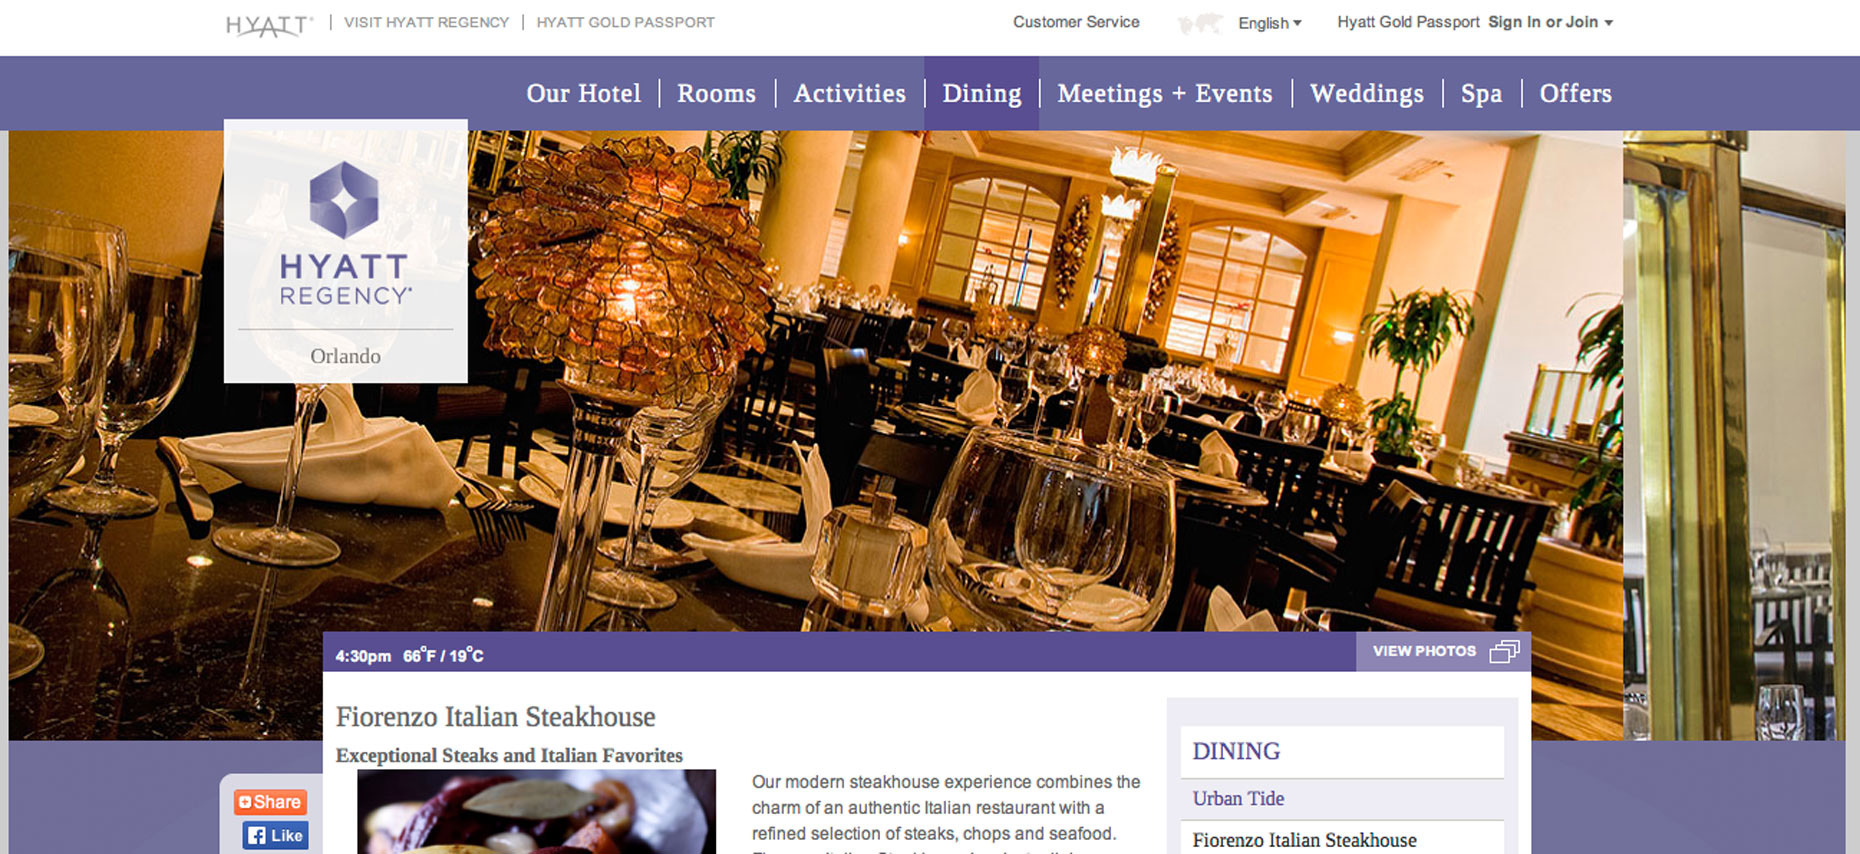 Fiorenzo Italian Steak House | Hyatt Regency Hotel Orlando